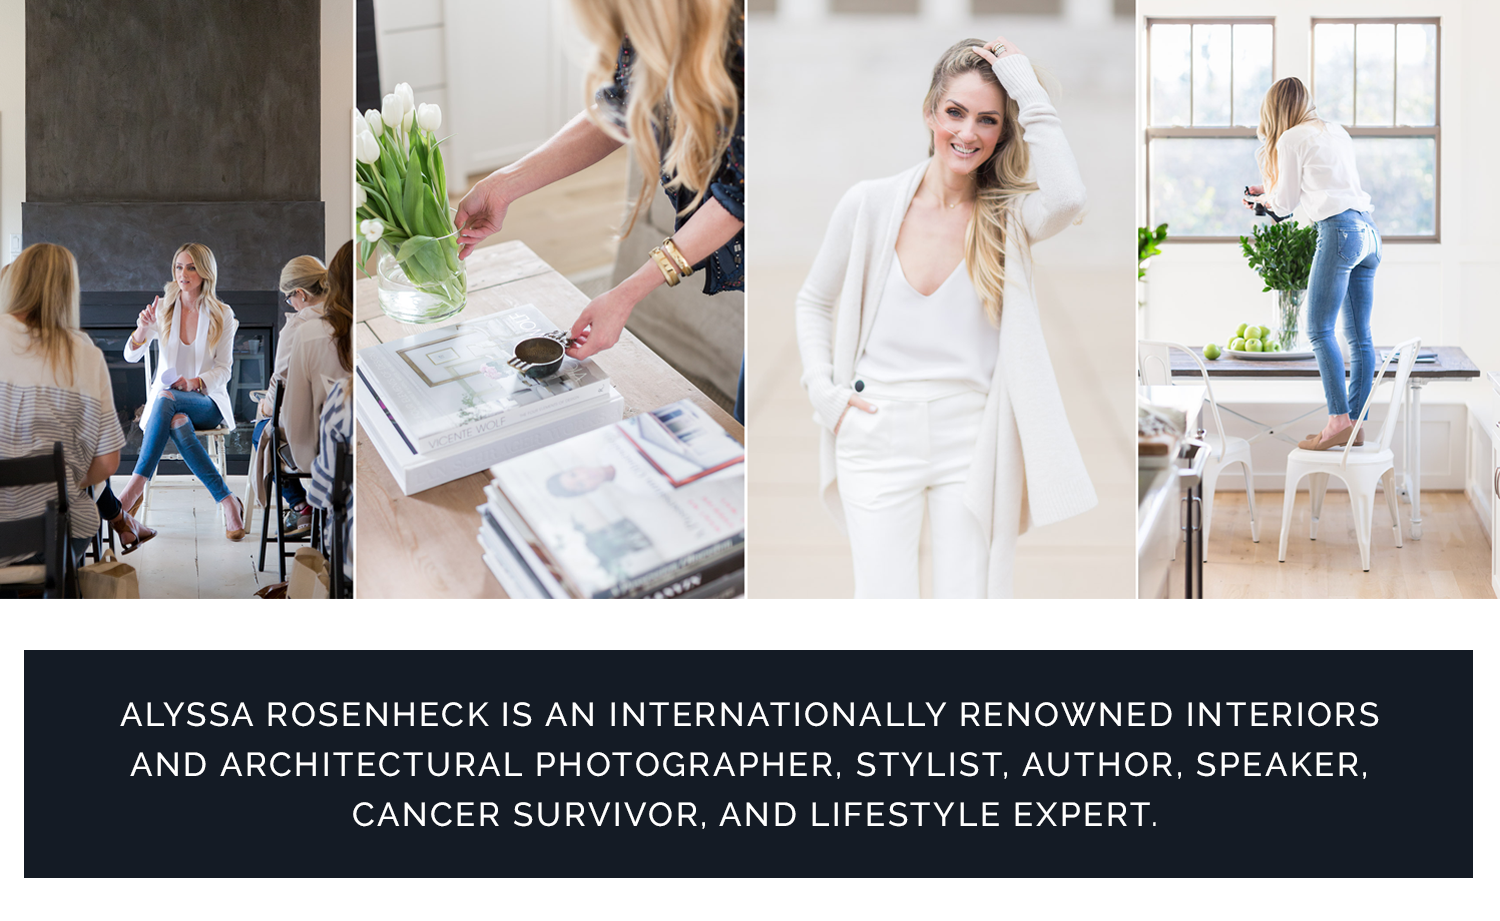 ALYSSA ROSENHECK IS AN INTERNATIONALLY RENOWNED INTERIORS AND ARCHITECTURAL PHOTOGRAPHER,   STYLIST, AUTHOR, SPEAKER, CANCER SURVIVOR, AND LIFESTYLE EXPERT.